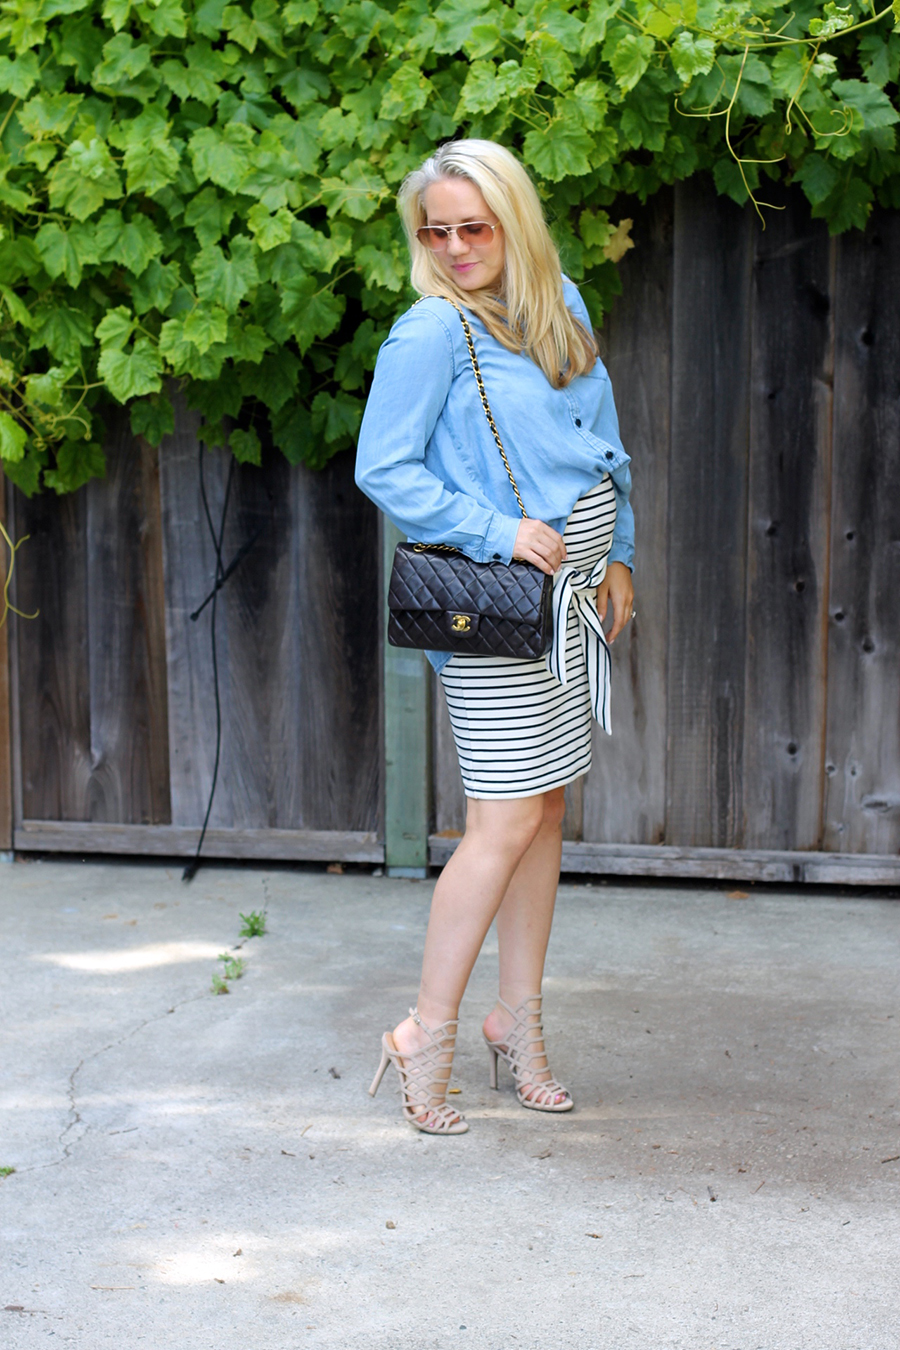 kingdom-state-tie-front-skirt-maternity-style-pregnancy-style-chambray-top-target-style-have-need-want-8